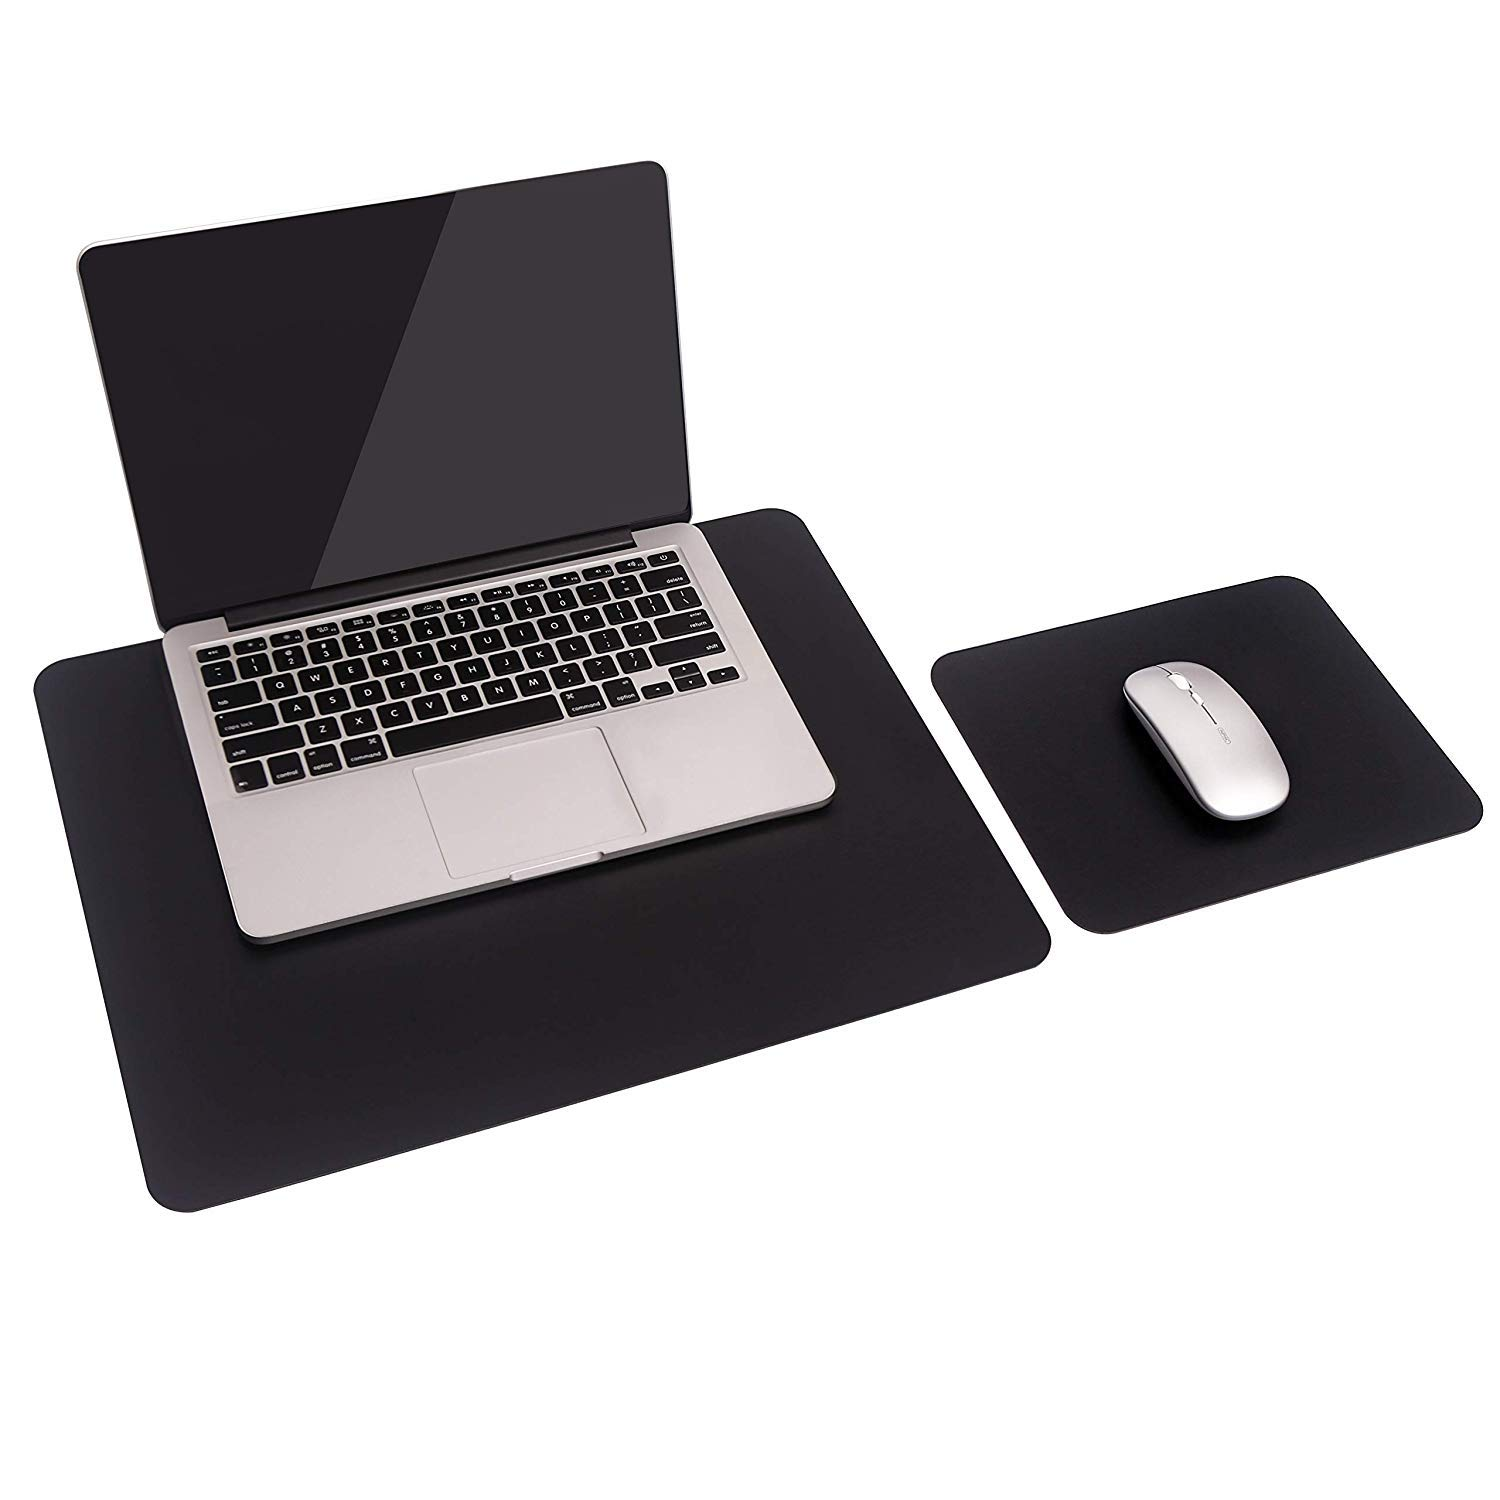 2 Pack of Mouse Pad, YSAGi Leather Desk mat Laptop Desk pad Computer Desk Mousepad Office Accessory Gift Set